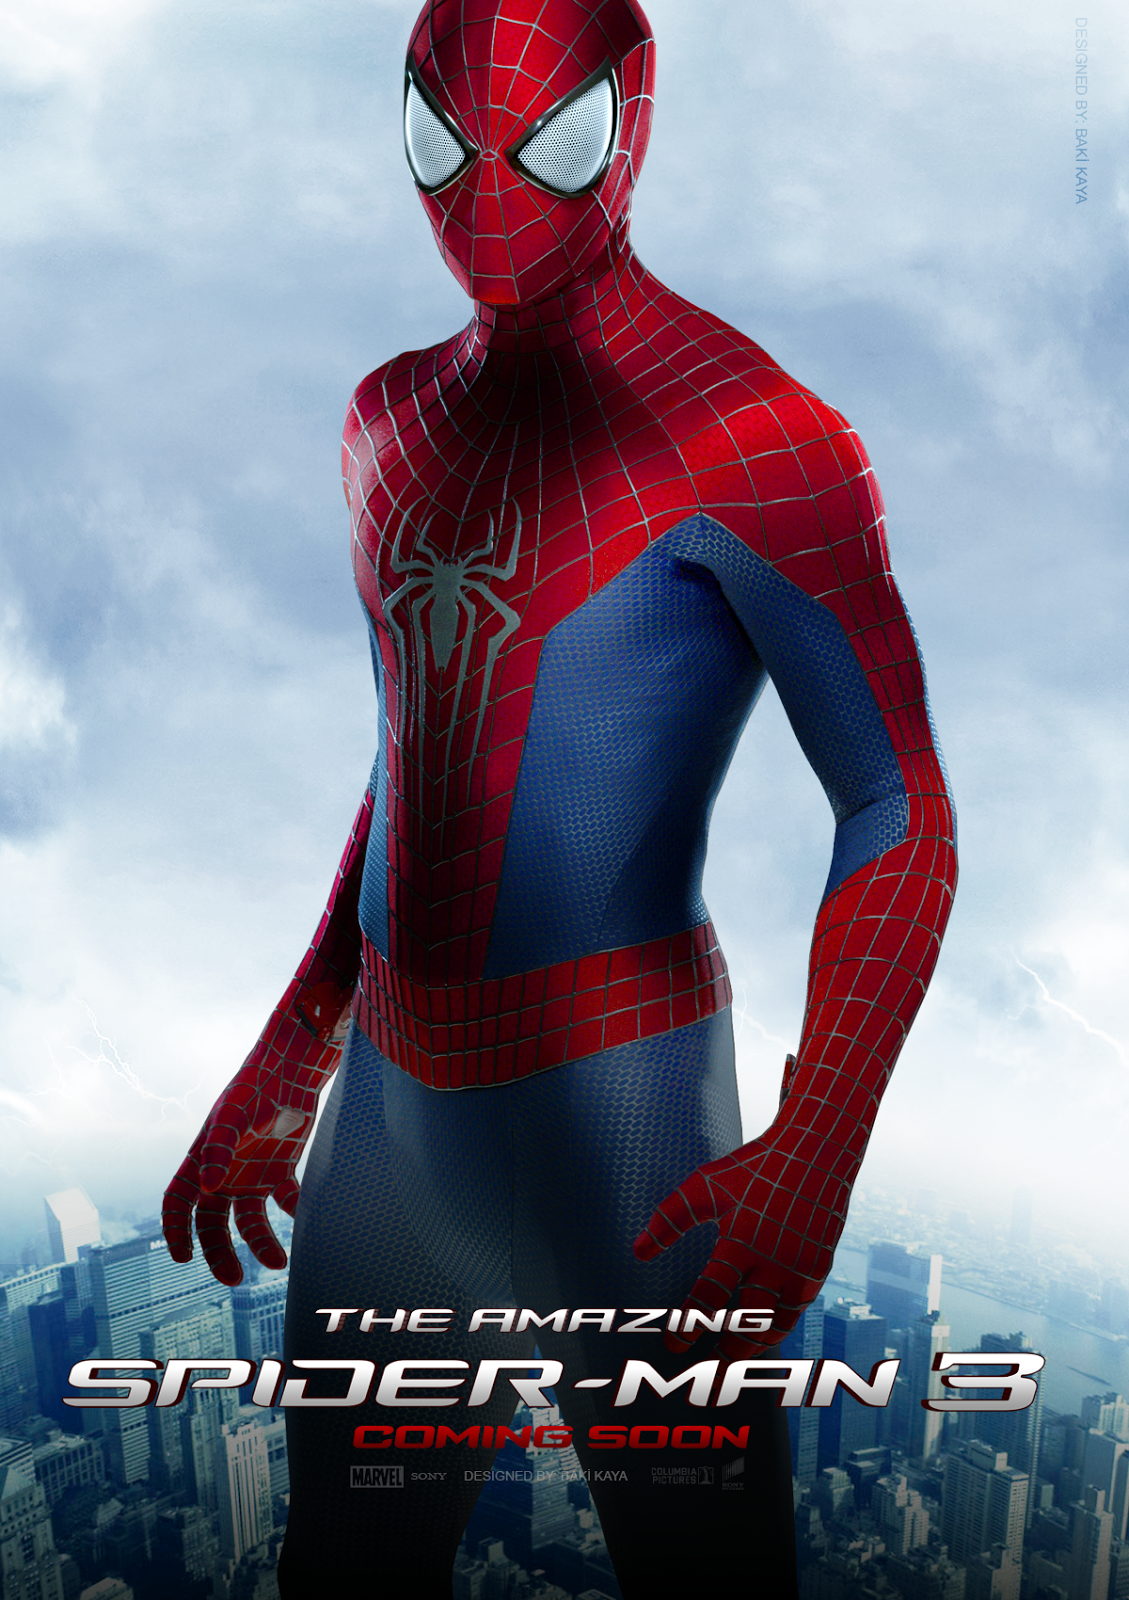 The Amazing Spider-Man 3 (10-06-2016)